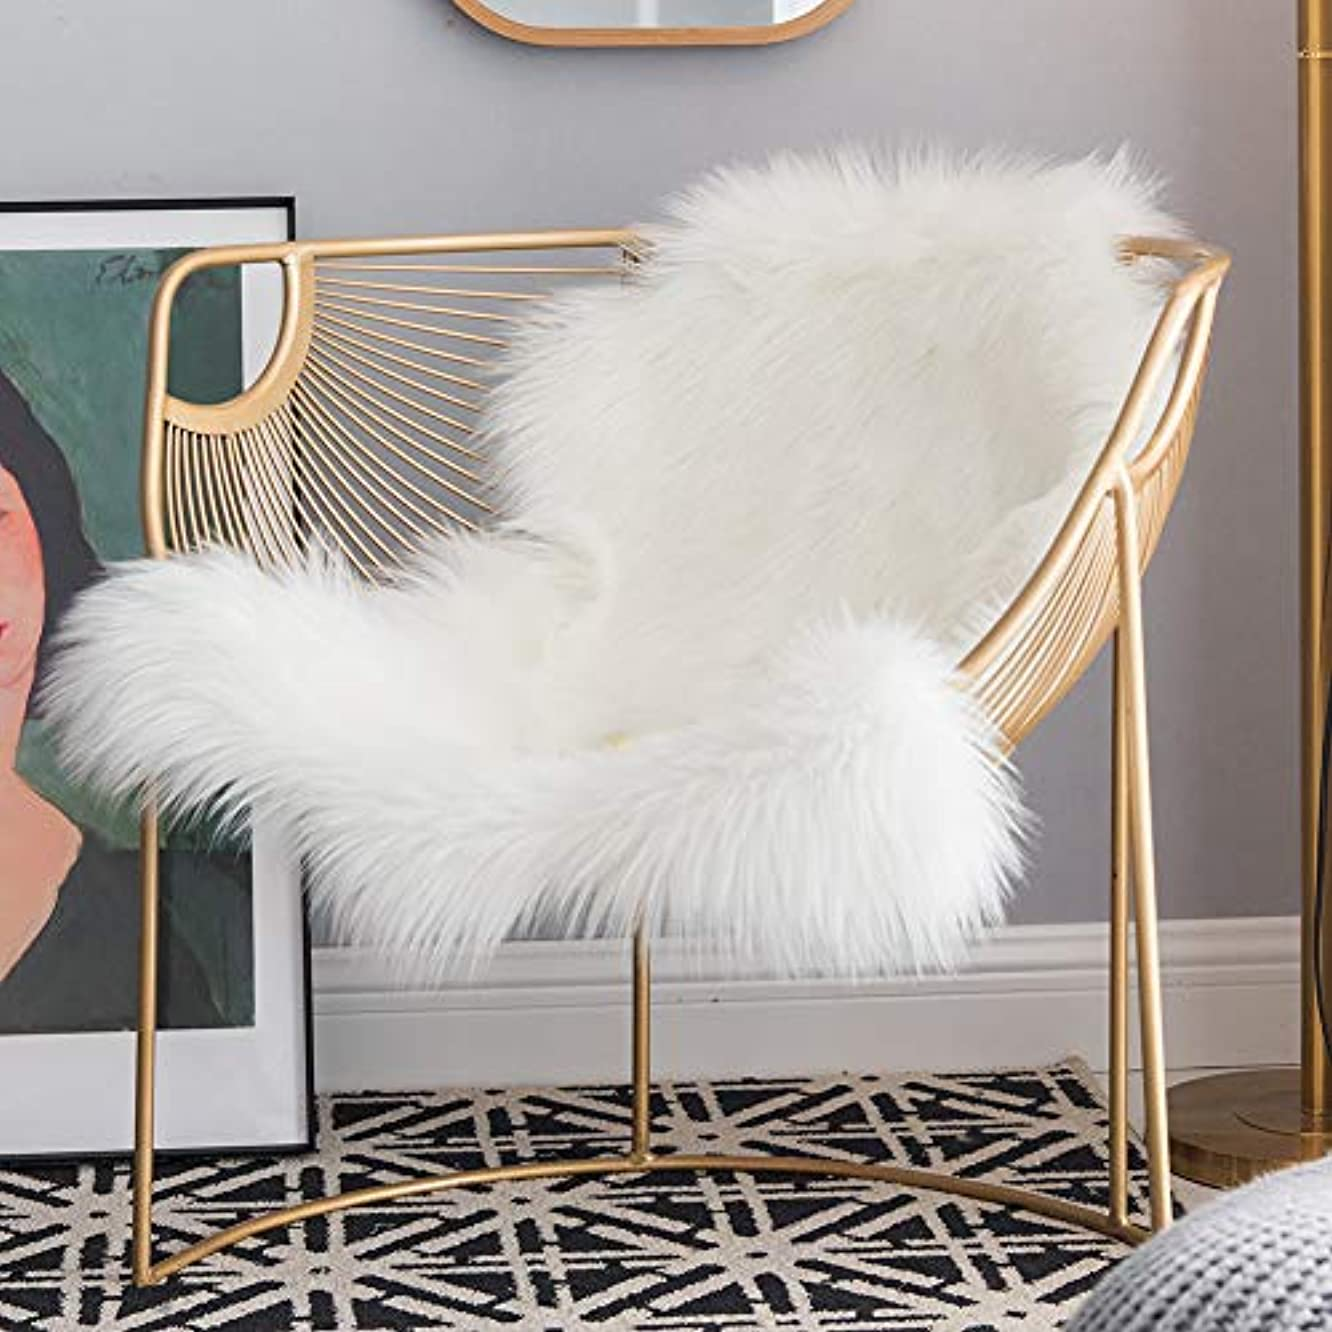 Carvapet Luxury Soft Faux Sheepskin Chair Cover Couch Seat Cushion Fur Pad Plush Area Rugs for Bedroom and Living Room, 2ft x 3ft, Ivory